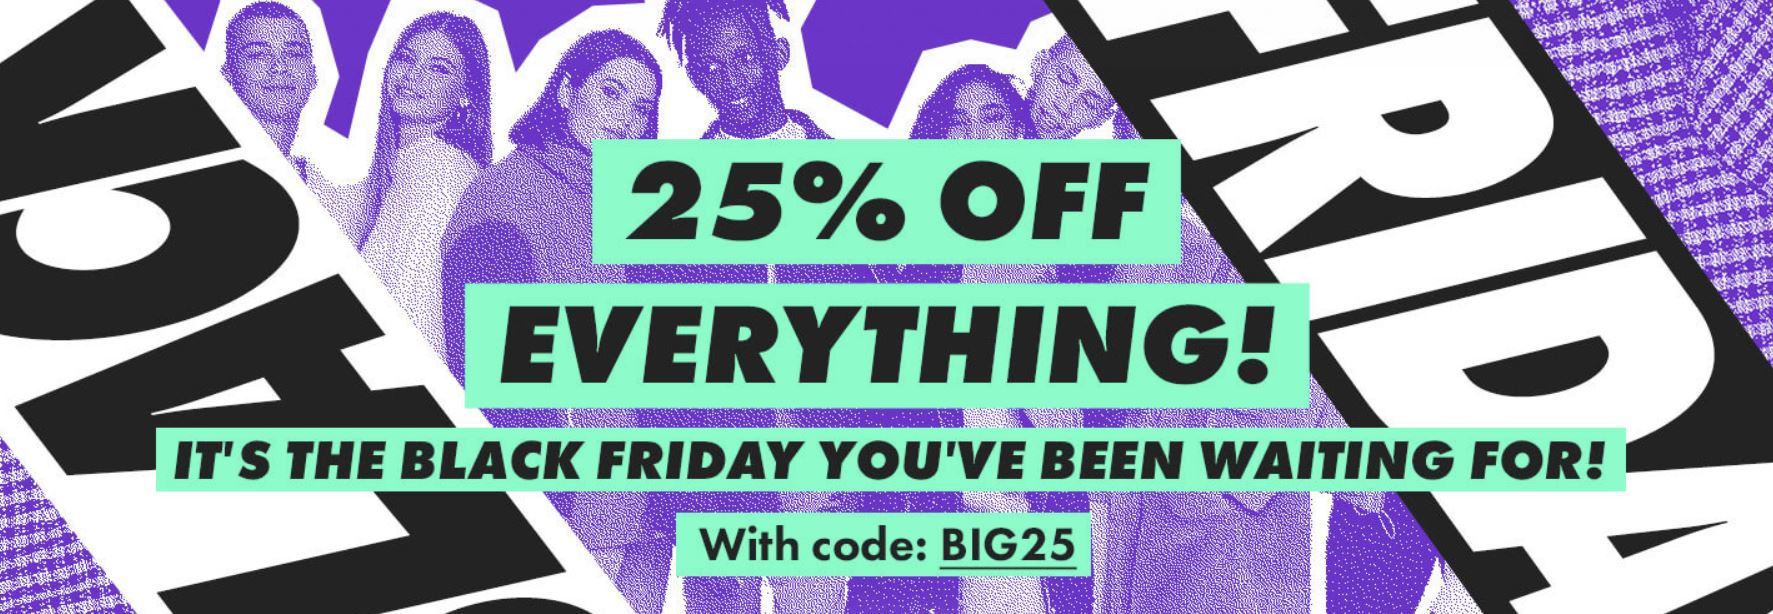 asos-black-friday-2019-ekptotikos-kodikos-blackfriday-asos-com